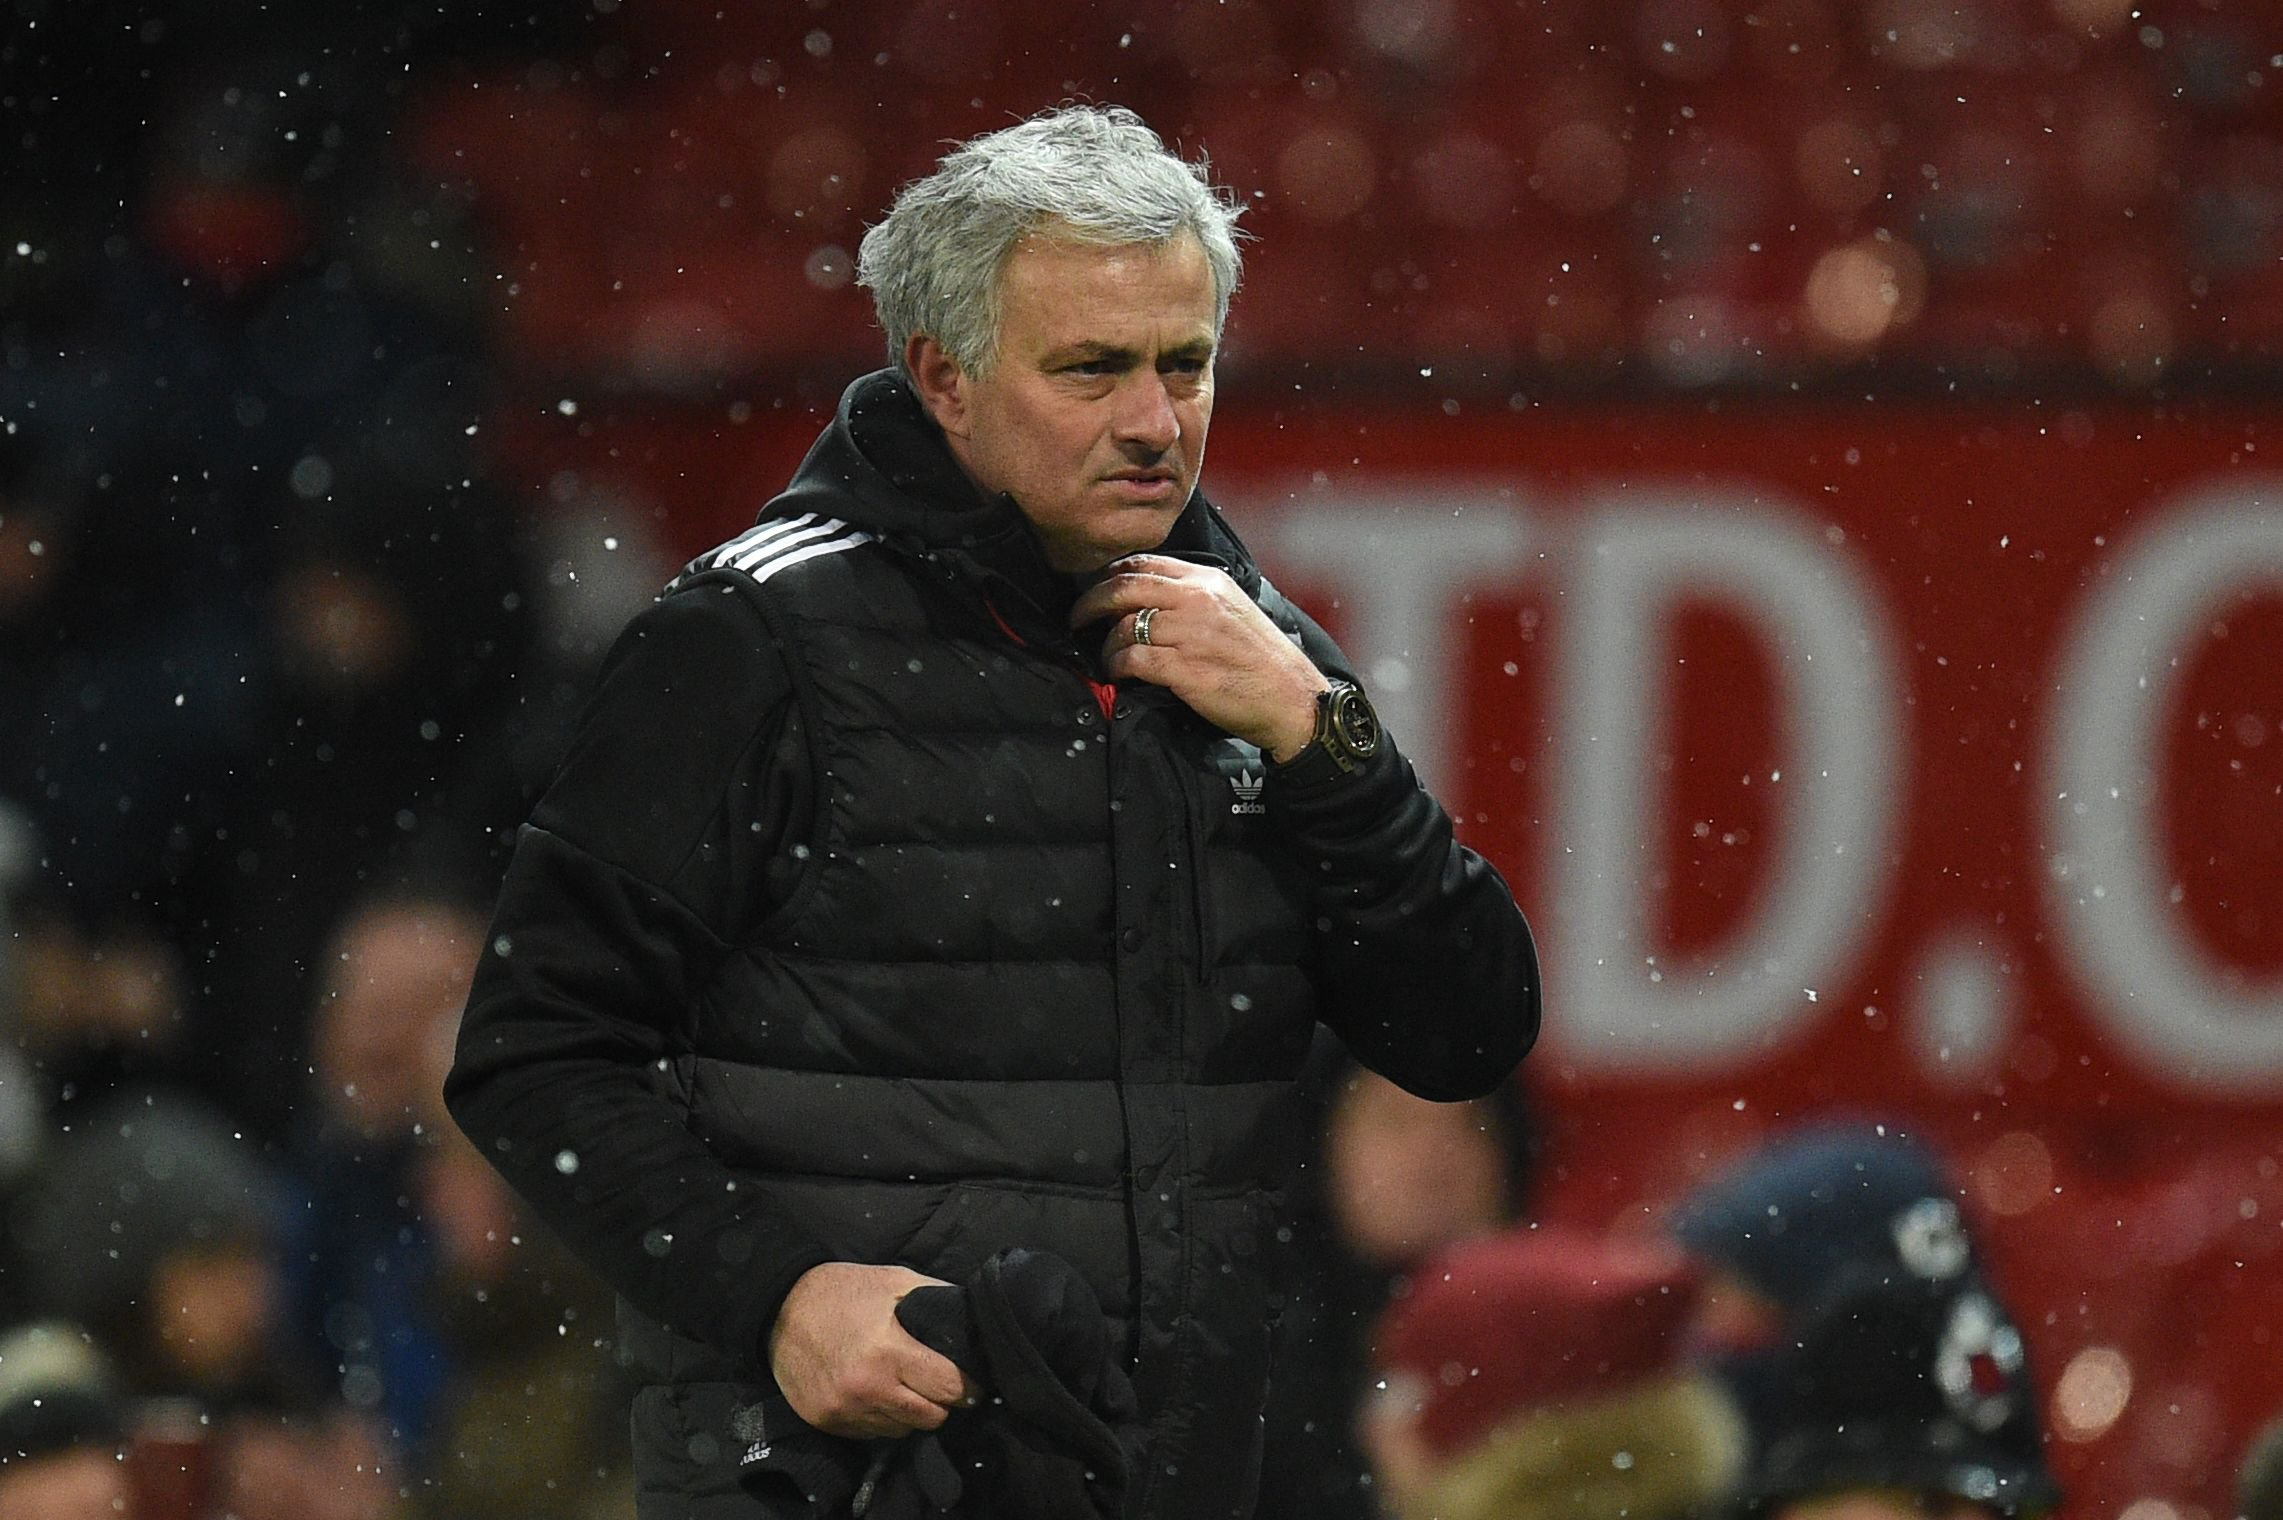 Manchester United's Portuguese manager Jose Mourinho reacts after the English FA Cup quarter-final football match between Manchester United and Brighton and Hove Albion at Old Trafford in Manchester, north west England, on March 17, 2018. / AFP PHOTO / Oli SCARFF / RESTRICTED TO EDITORIAL USE. No use with unauthorized audio, video, data, fixture lists, club/league logos or 'live' services. Online in-match use limited to 75 images, no video emulation. No use in betting, games or single club/league/player publications. / OLI SCARFF/AFP/Getty Images